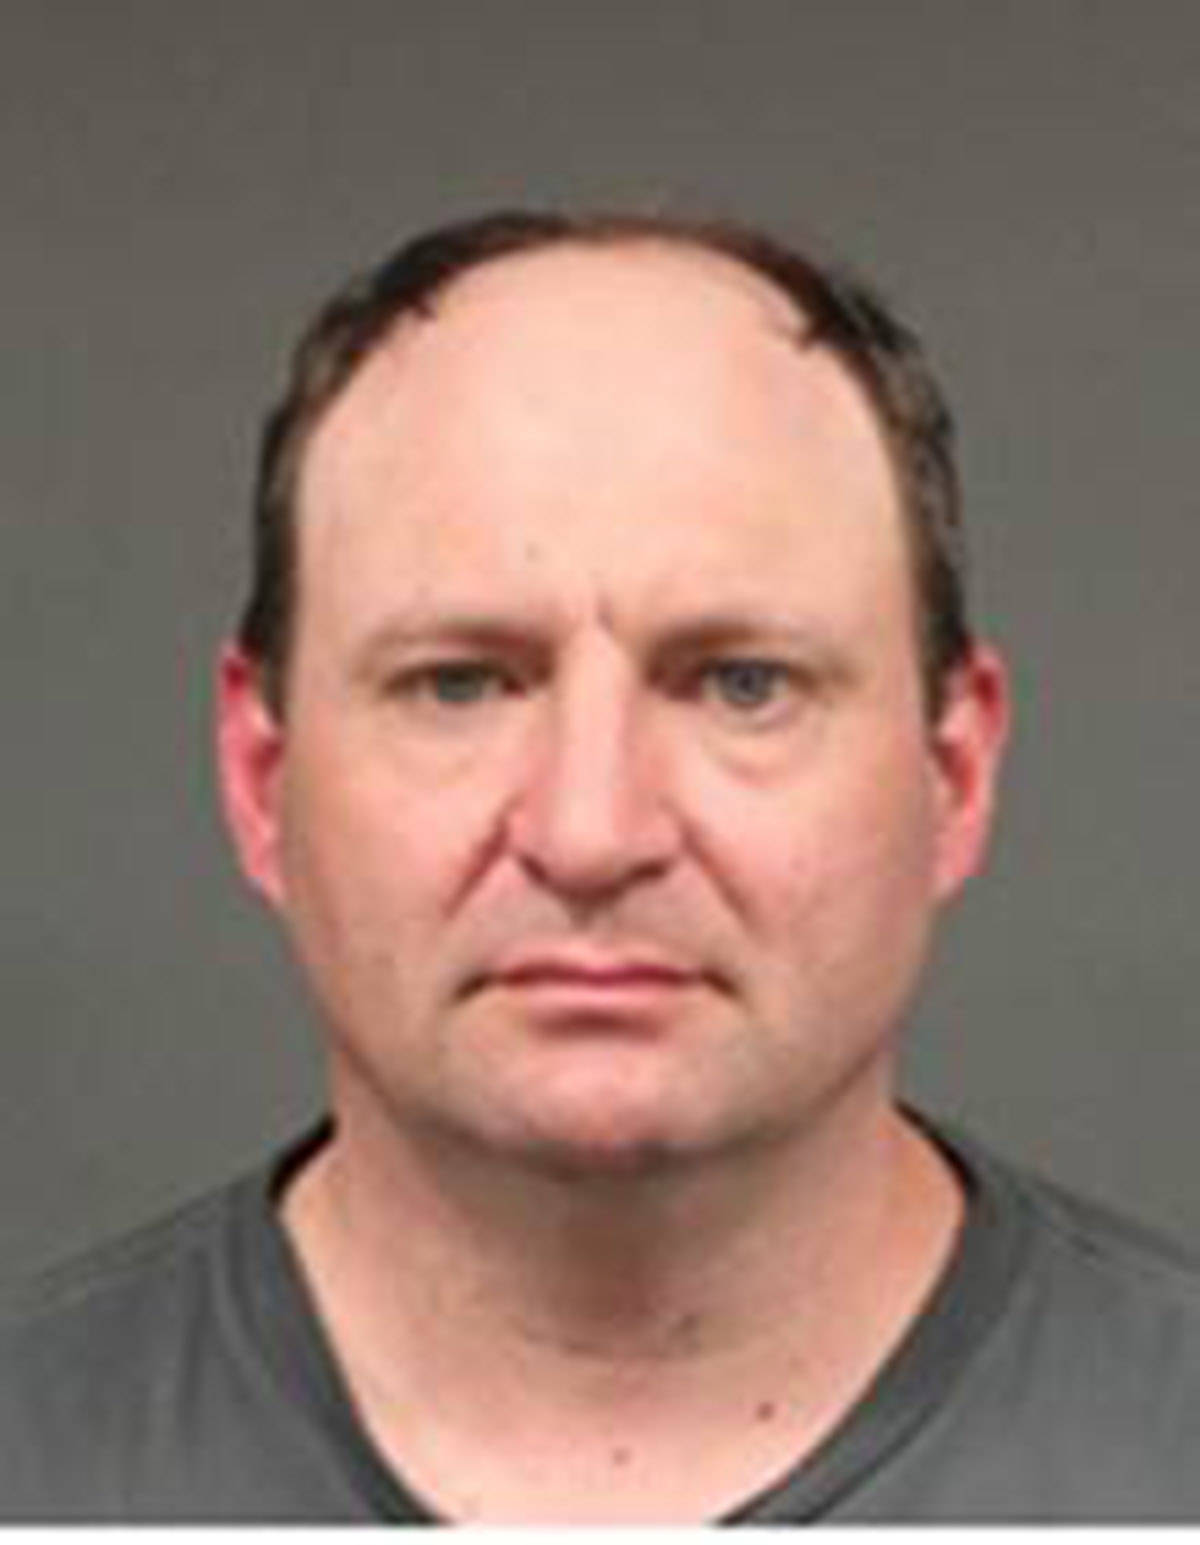 Name: Leslie McNicol Age: 46 Height: 6'4 ft Weight: 190 lbs Hair: Bald/Brown Eyes: Blue Wanted: Unlawfully in dwelling, Assault & Breach x3 Warrant in effect: June 09, 2020 Parole Jurisdiction: Abbotsford, BC